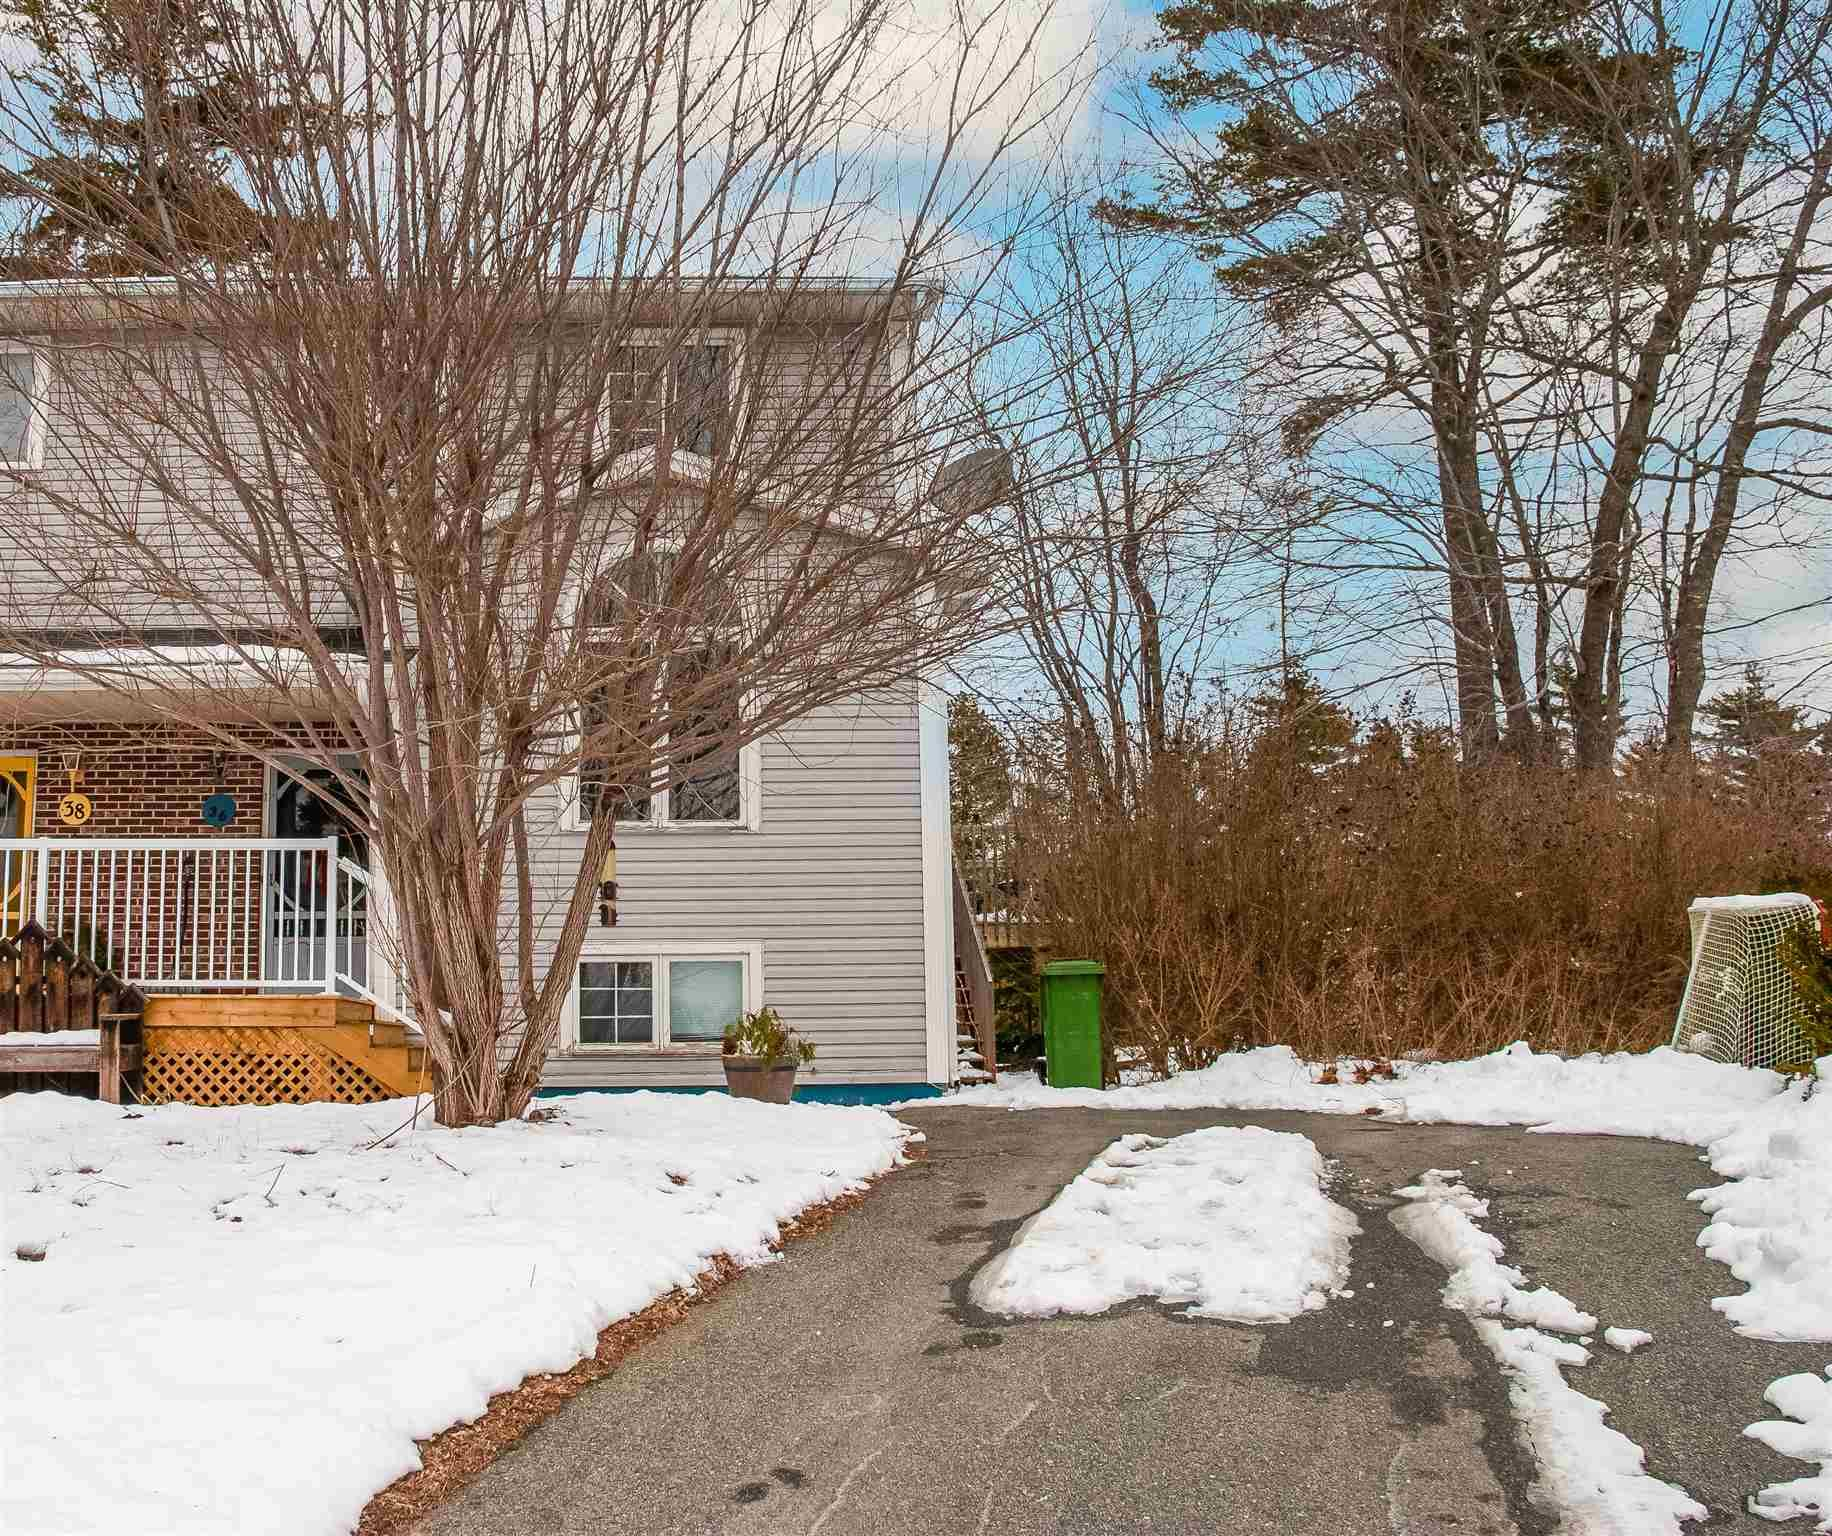 Main Photo: 36 Willowbend Court in Bridgewater: 405-Lunenburg County Residential for sale (South Shore)  : MLS®# 202101874